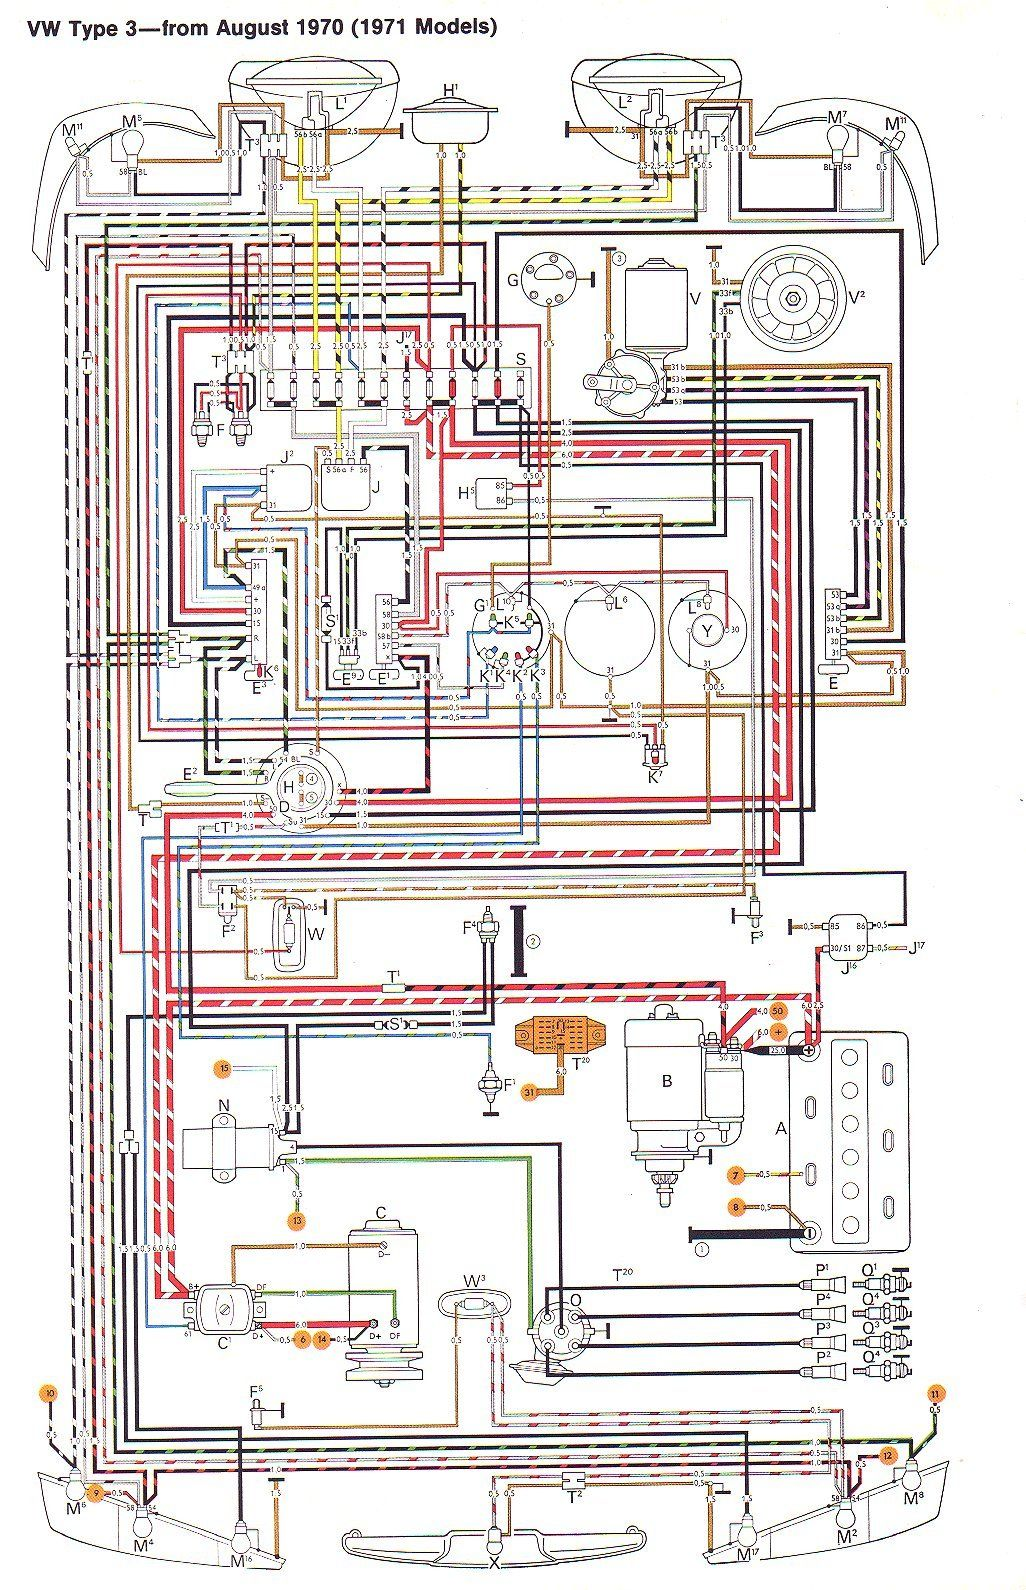 71 VW T3 wiring diagram | Ruthie | Cars, Vw beetles, Volkswagen  Beetle Wiring Harness Diagram on 71 beetle seats, 71 beetle wheels, 71 beetle fuse diagram, 71 beetle bumpers, vw beetle diagram, 71 beetle exhaust, 71 beetle engine, 71 beetle parts, super beetle engine diagram, 71 beetle carb diagram, 71 beetle rear suspension, 1971 vw engine diagram, 71 beetle oil filter,